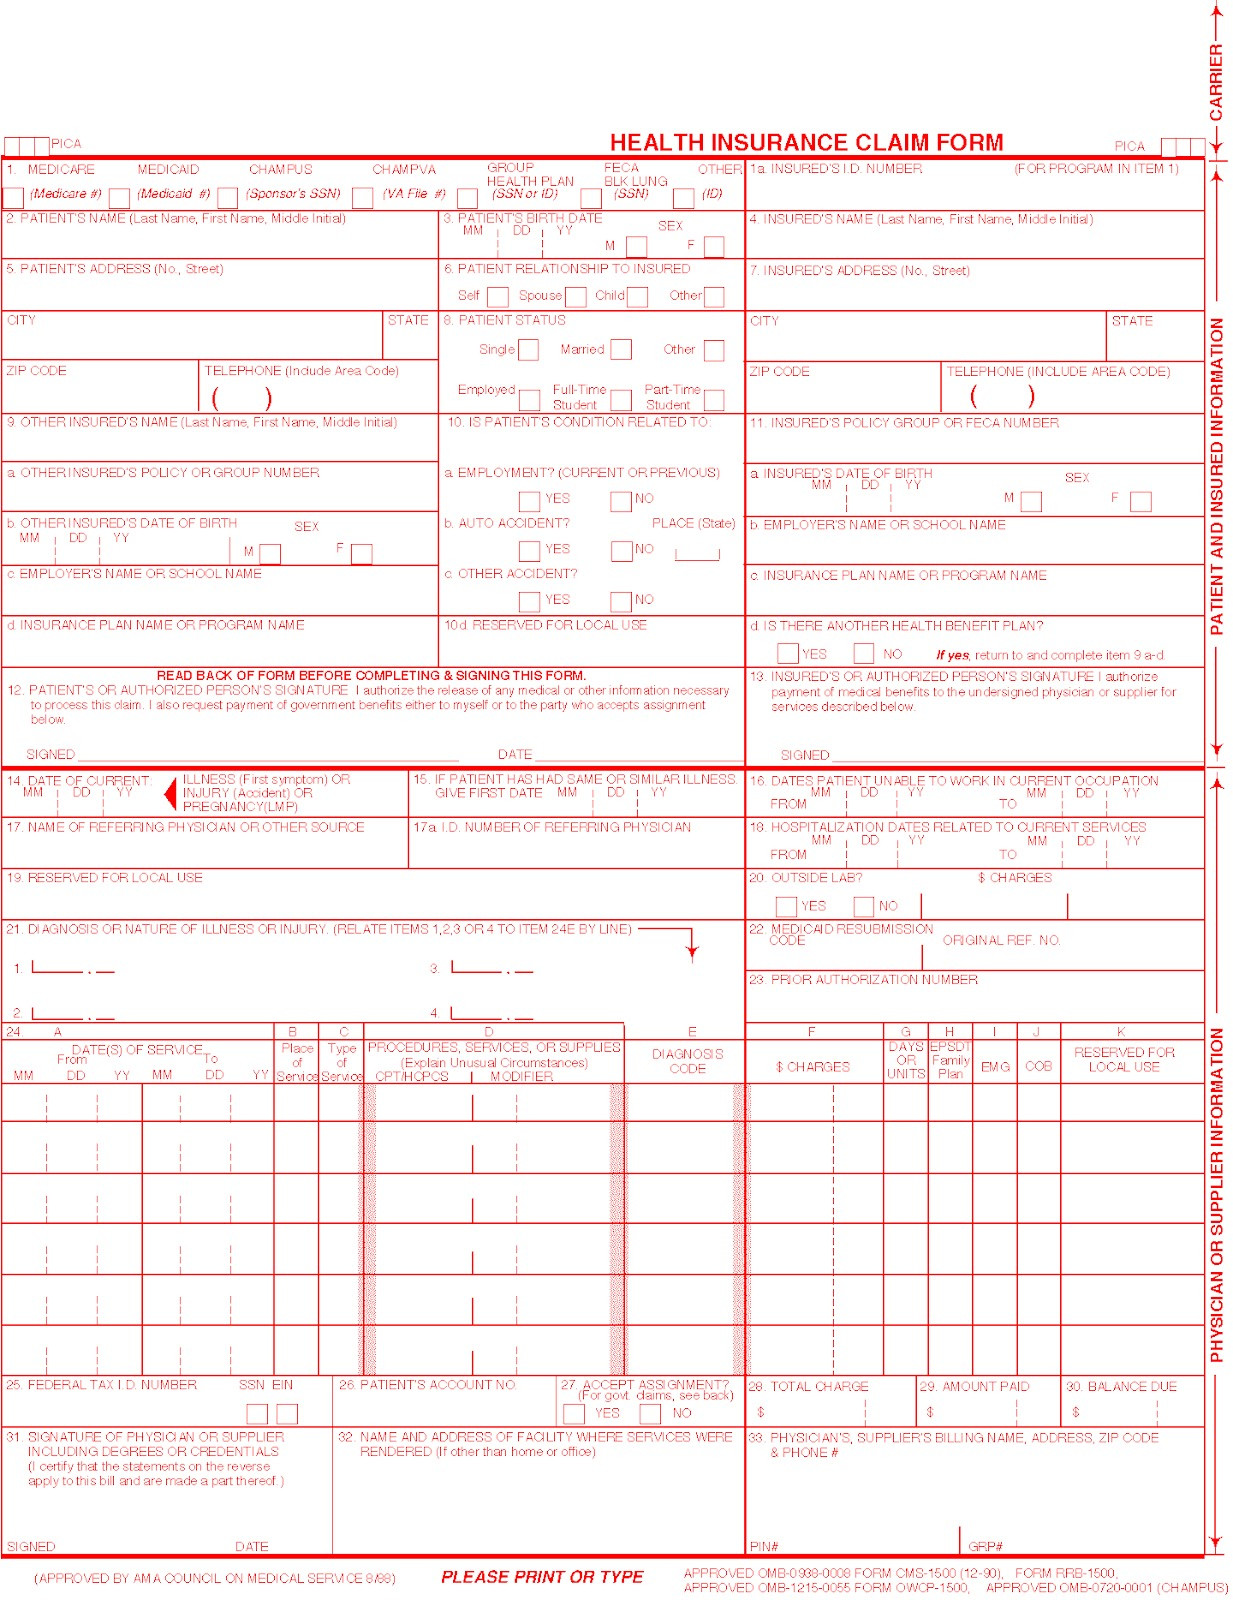 Health Insurance Claim Form 1500 Fillable Unique Understanding Your Medical Claims Insurance Claim Forms Aka The